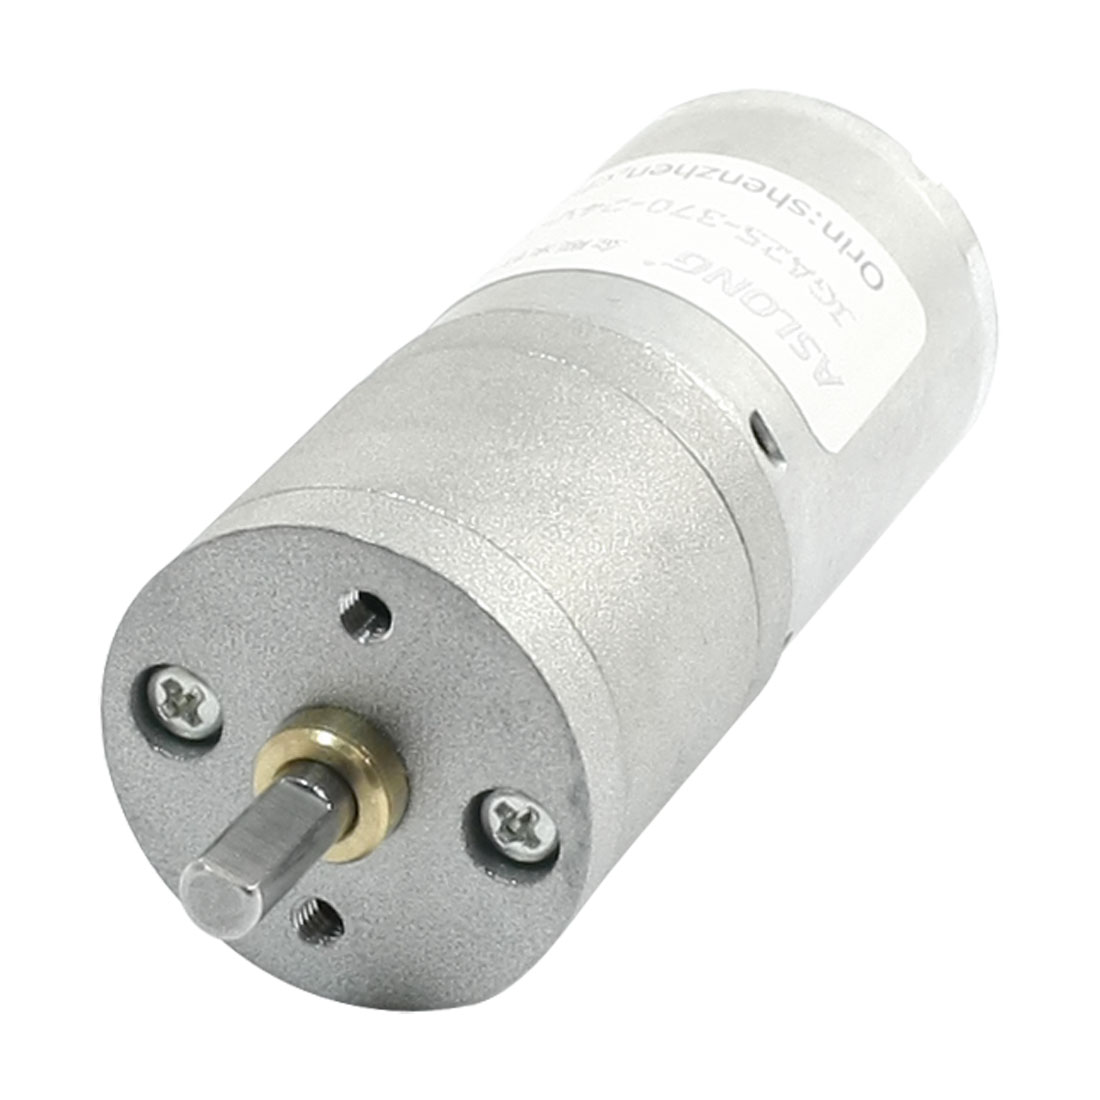 GA25-370 DC24V 22RPM Soldering Rotary Speed Reducer Gear Motor